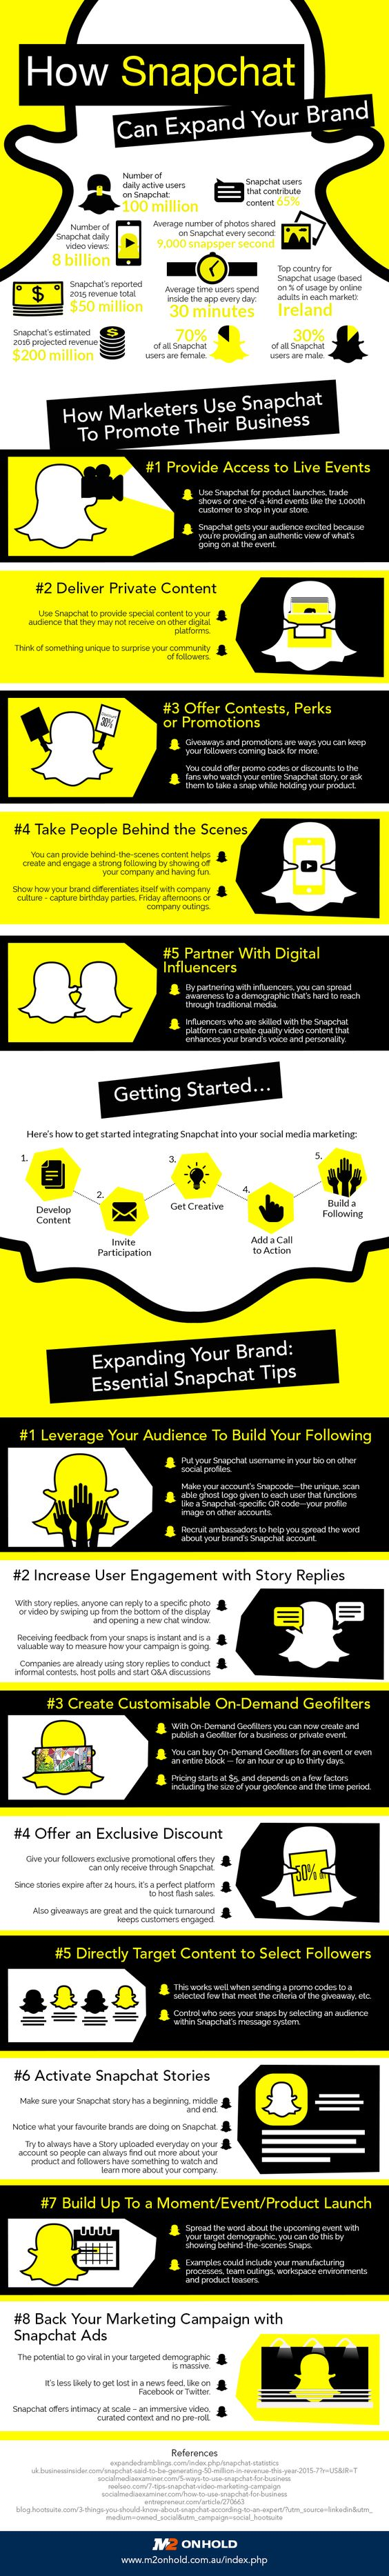 How Can Snapchat Expand Your Brand